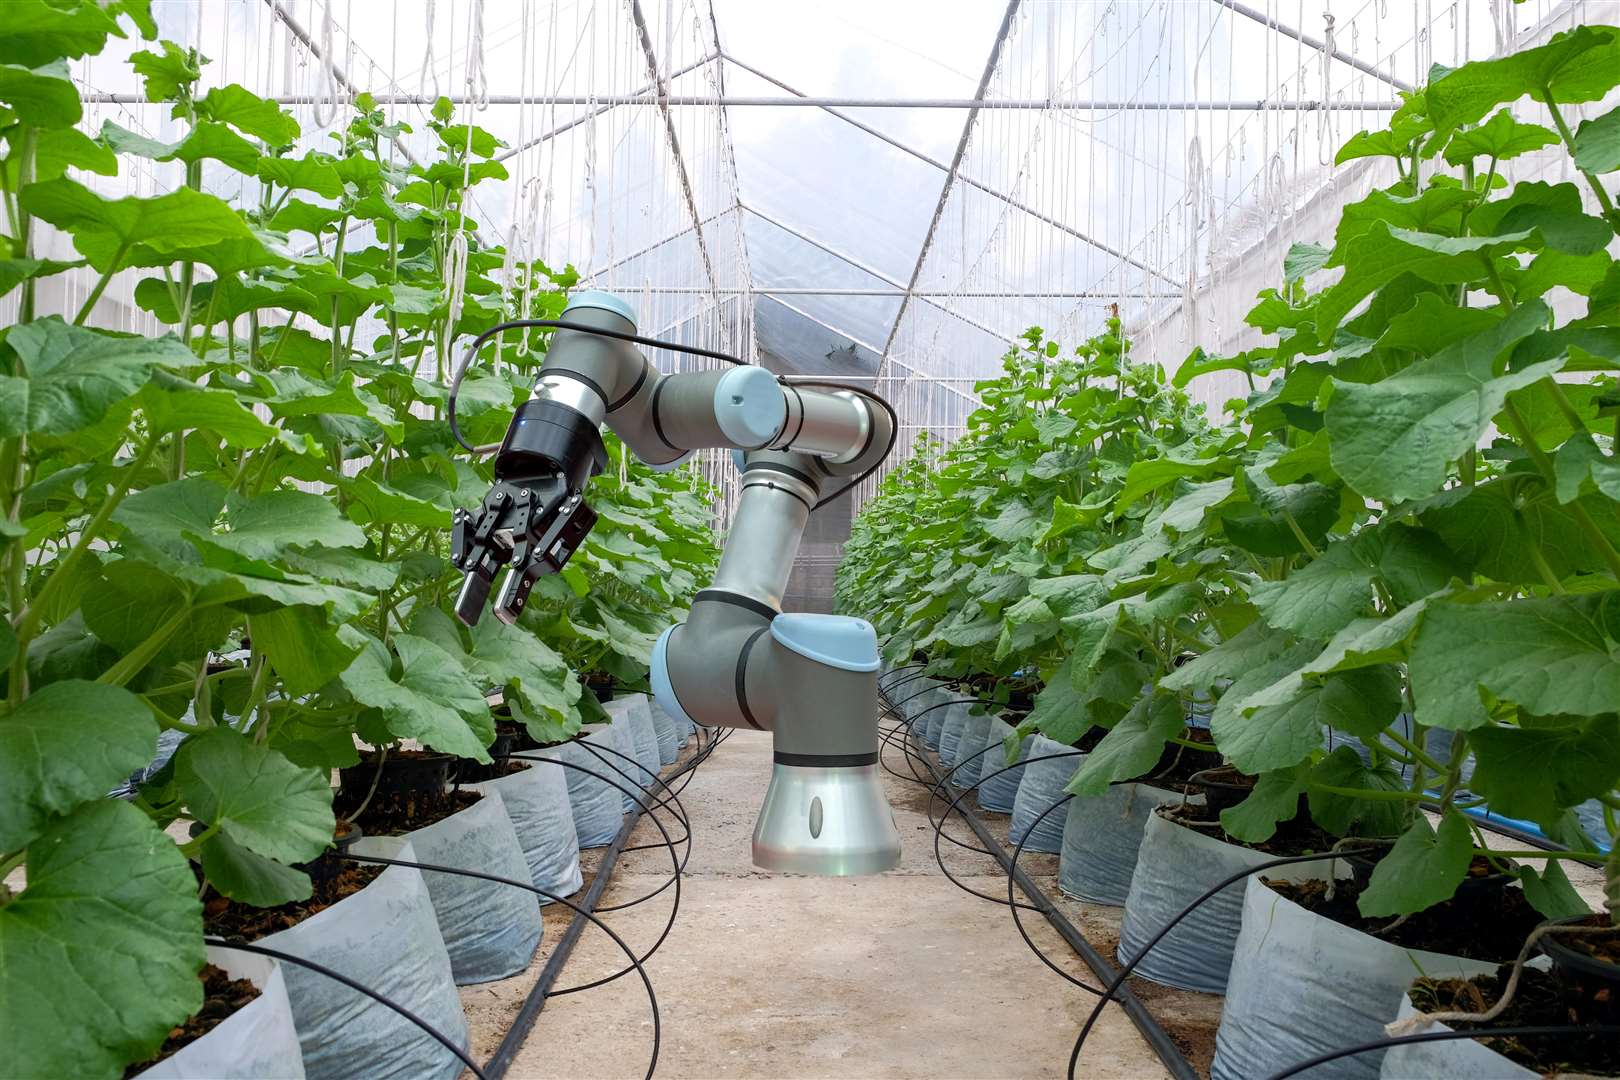 A robot at work in a greenhouse (7257409)